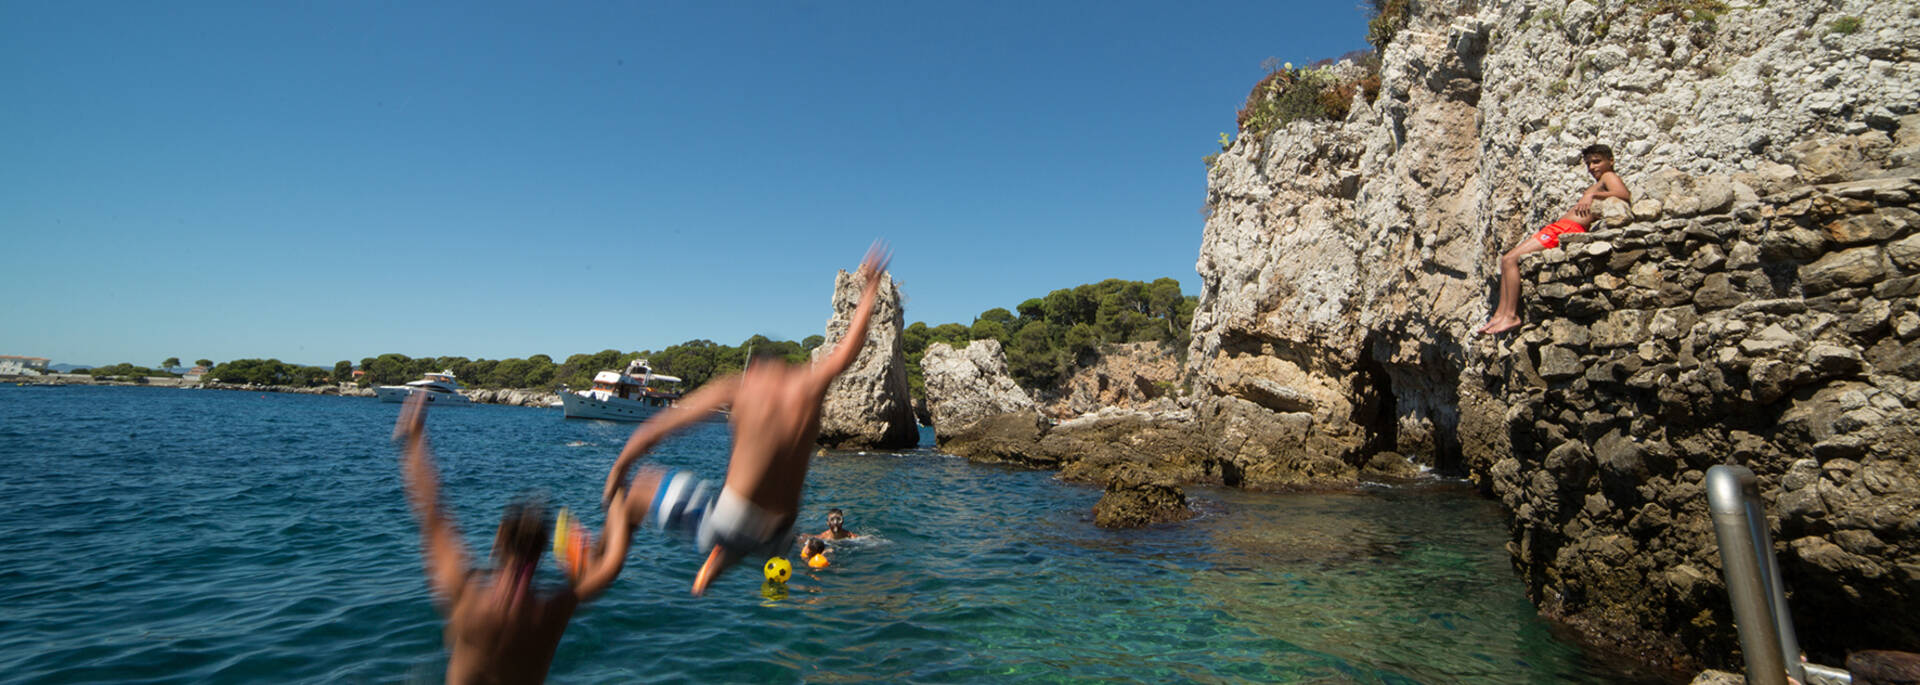 During the summer, people dive from the rocks